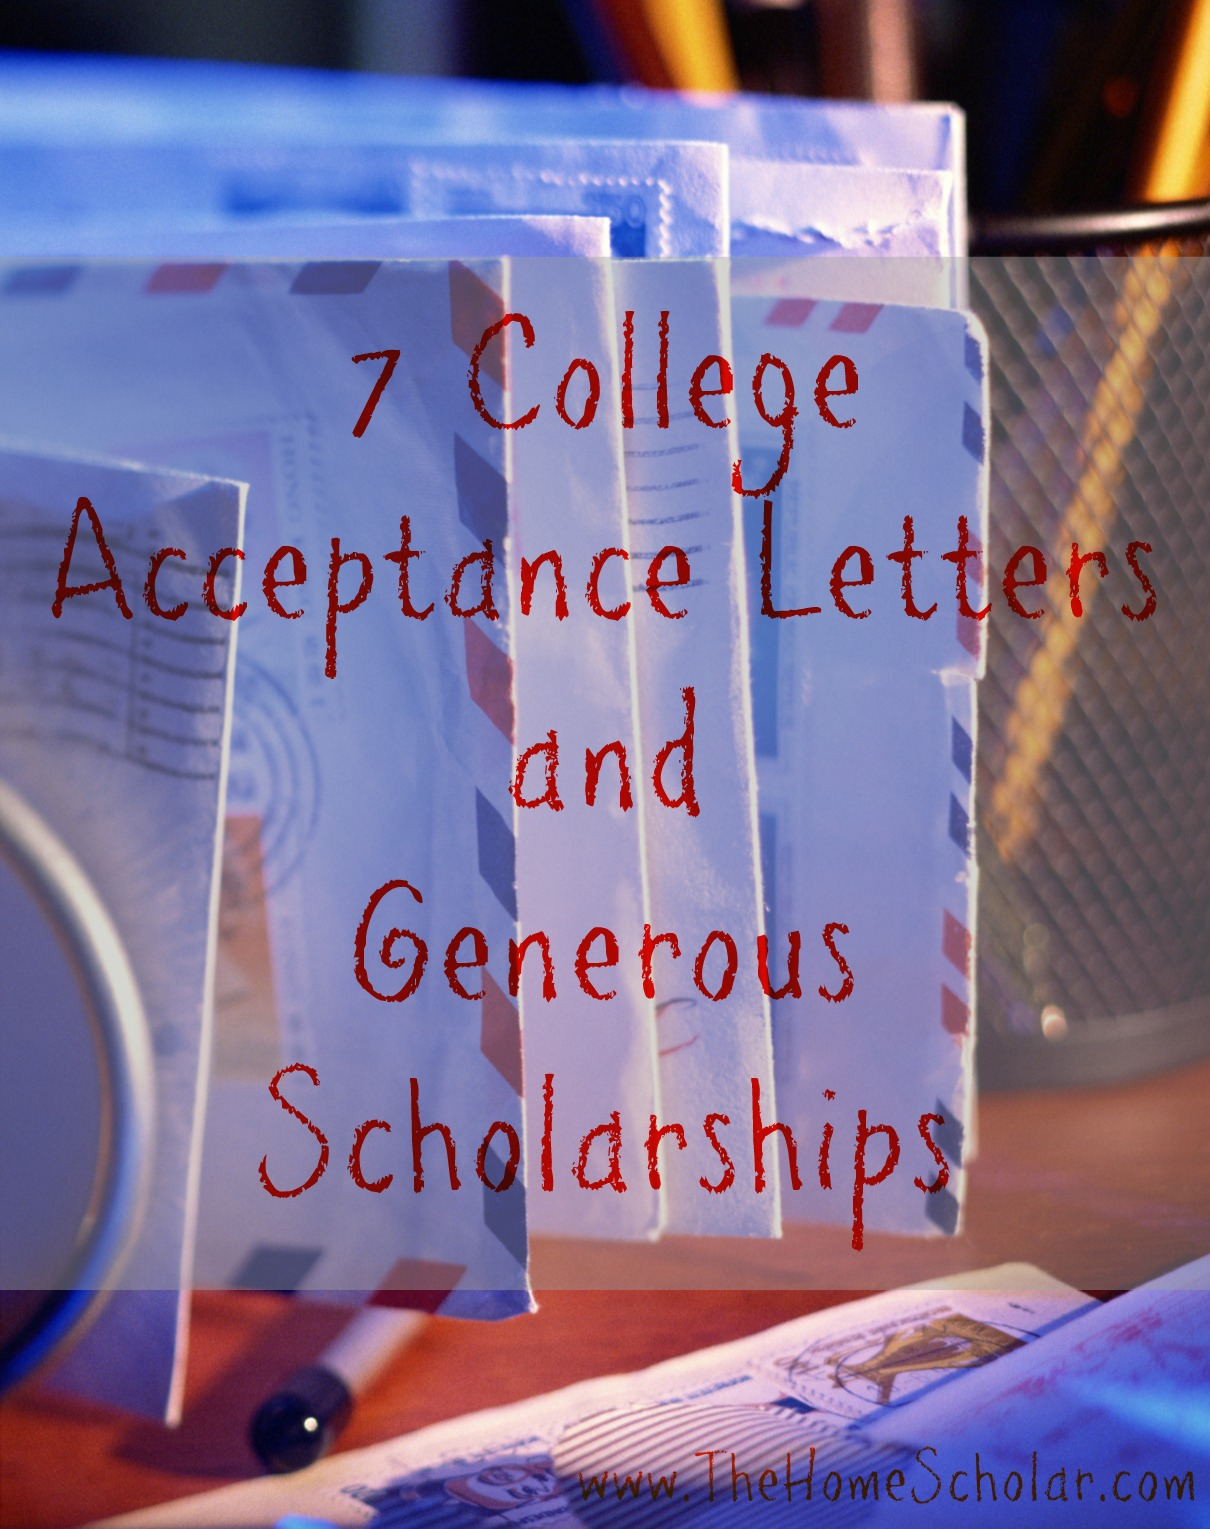 7 College Acceptance Letters and Generous Scholarships